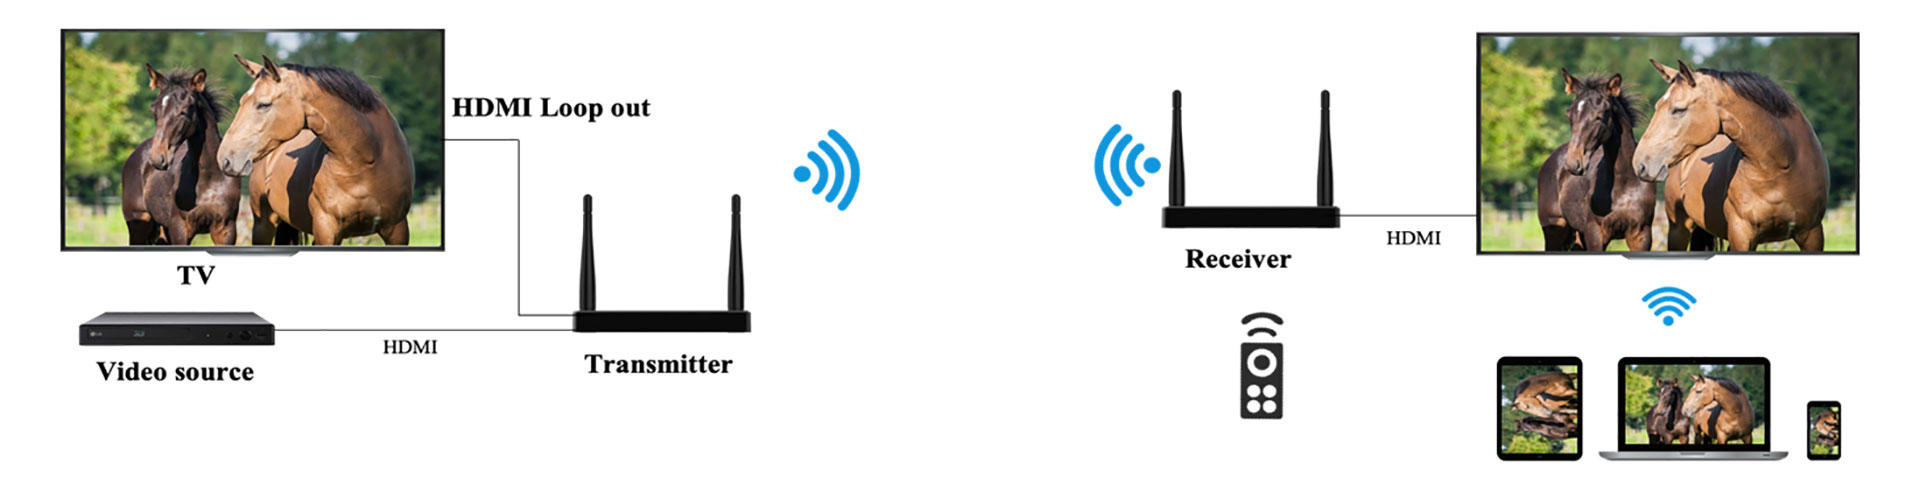 Wireless HDMI Sender and Receiver 1080P 100M WHD1003-2